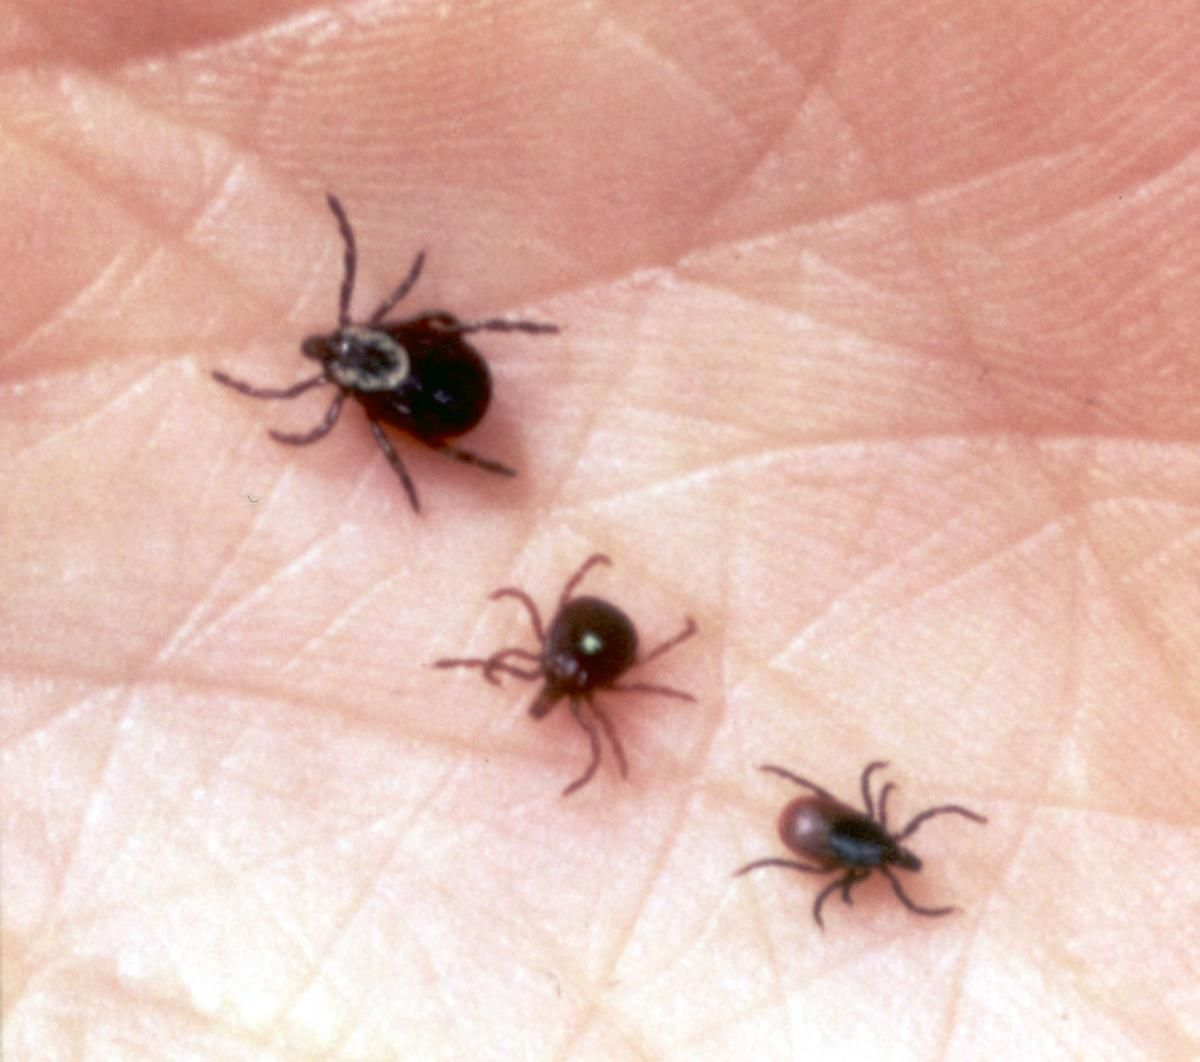 how to remove a tick head stuck in skin